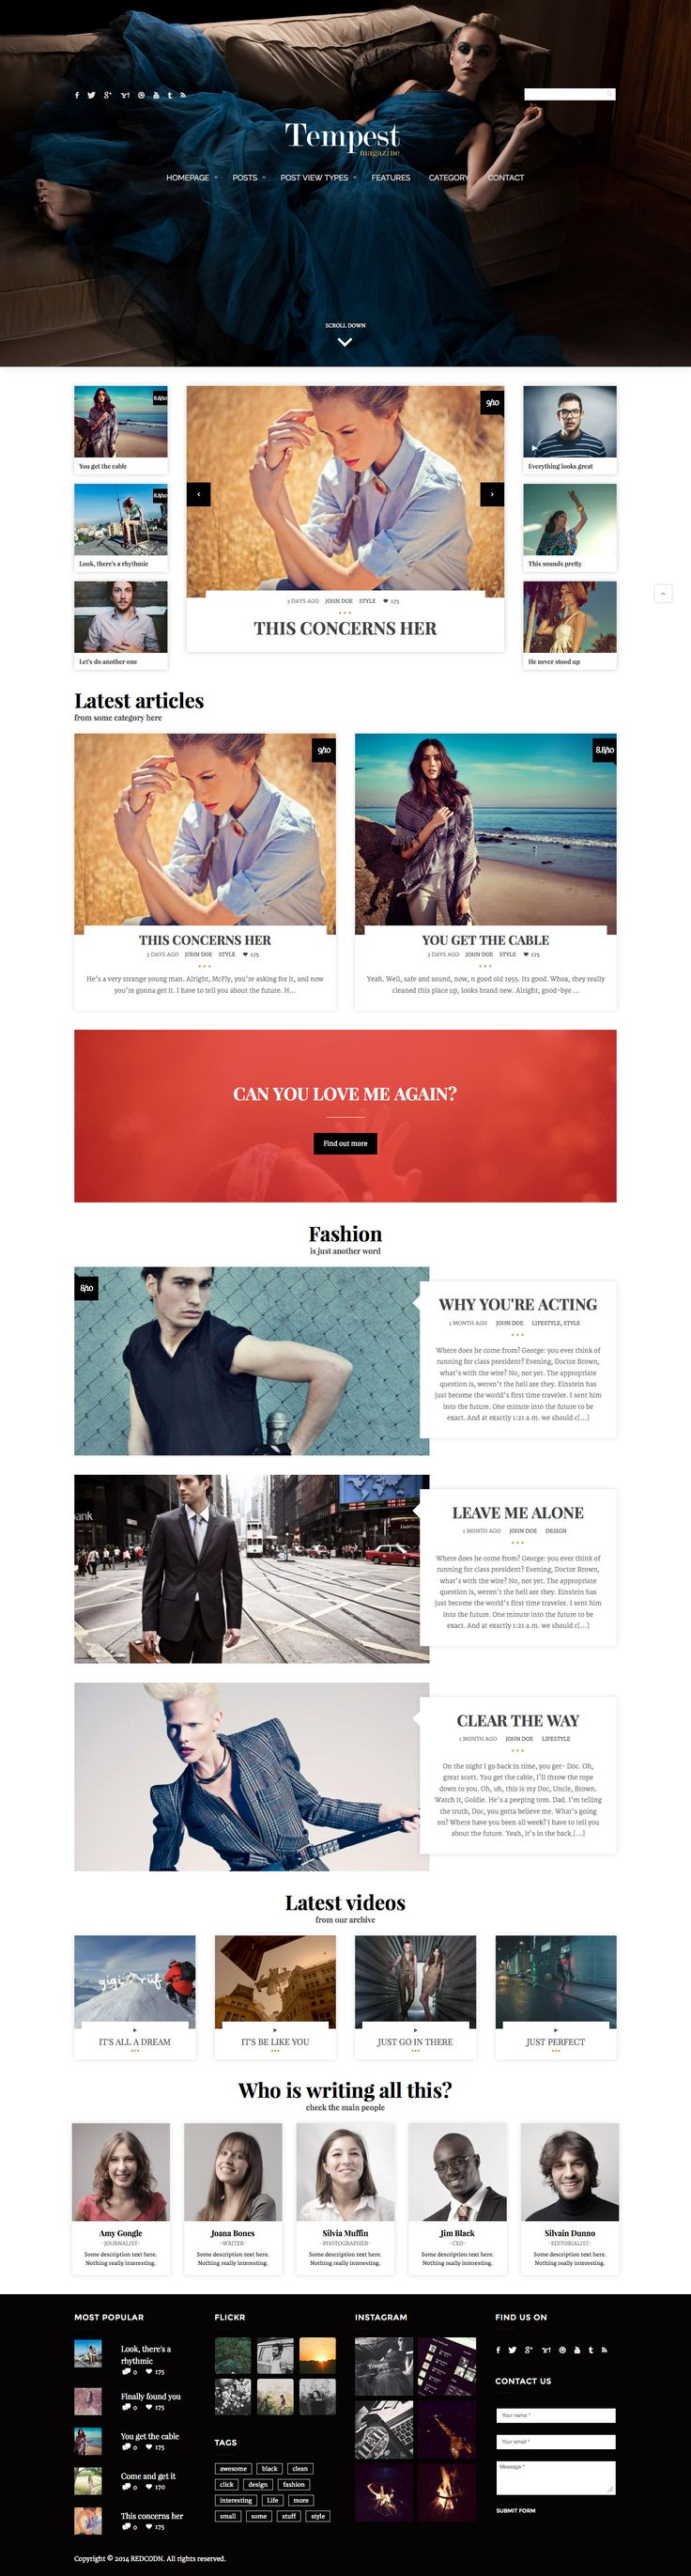 Tempest Magazine executes a complex grid layout well. The web page opens with a trendy full-screen photo, and the 3-column small gallery underneath draws attention to the next largest photo.